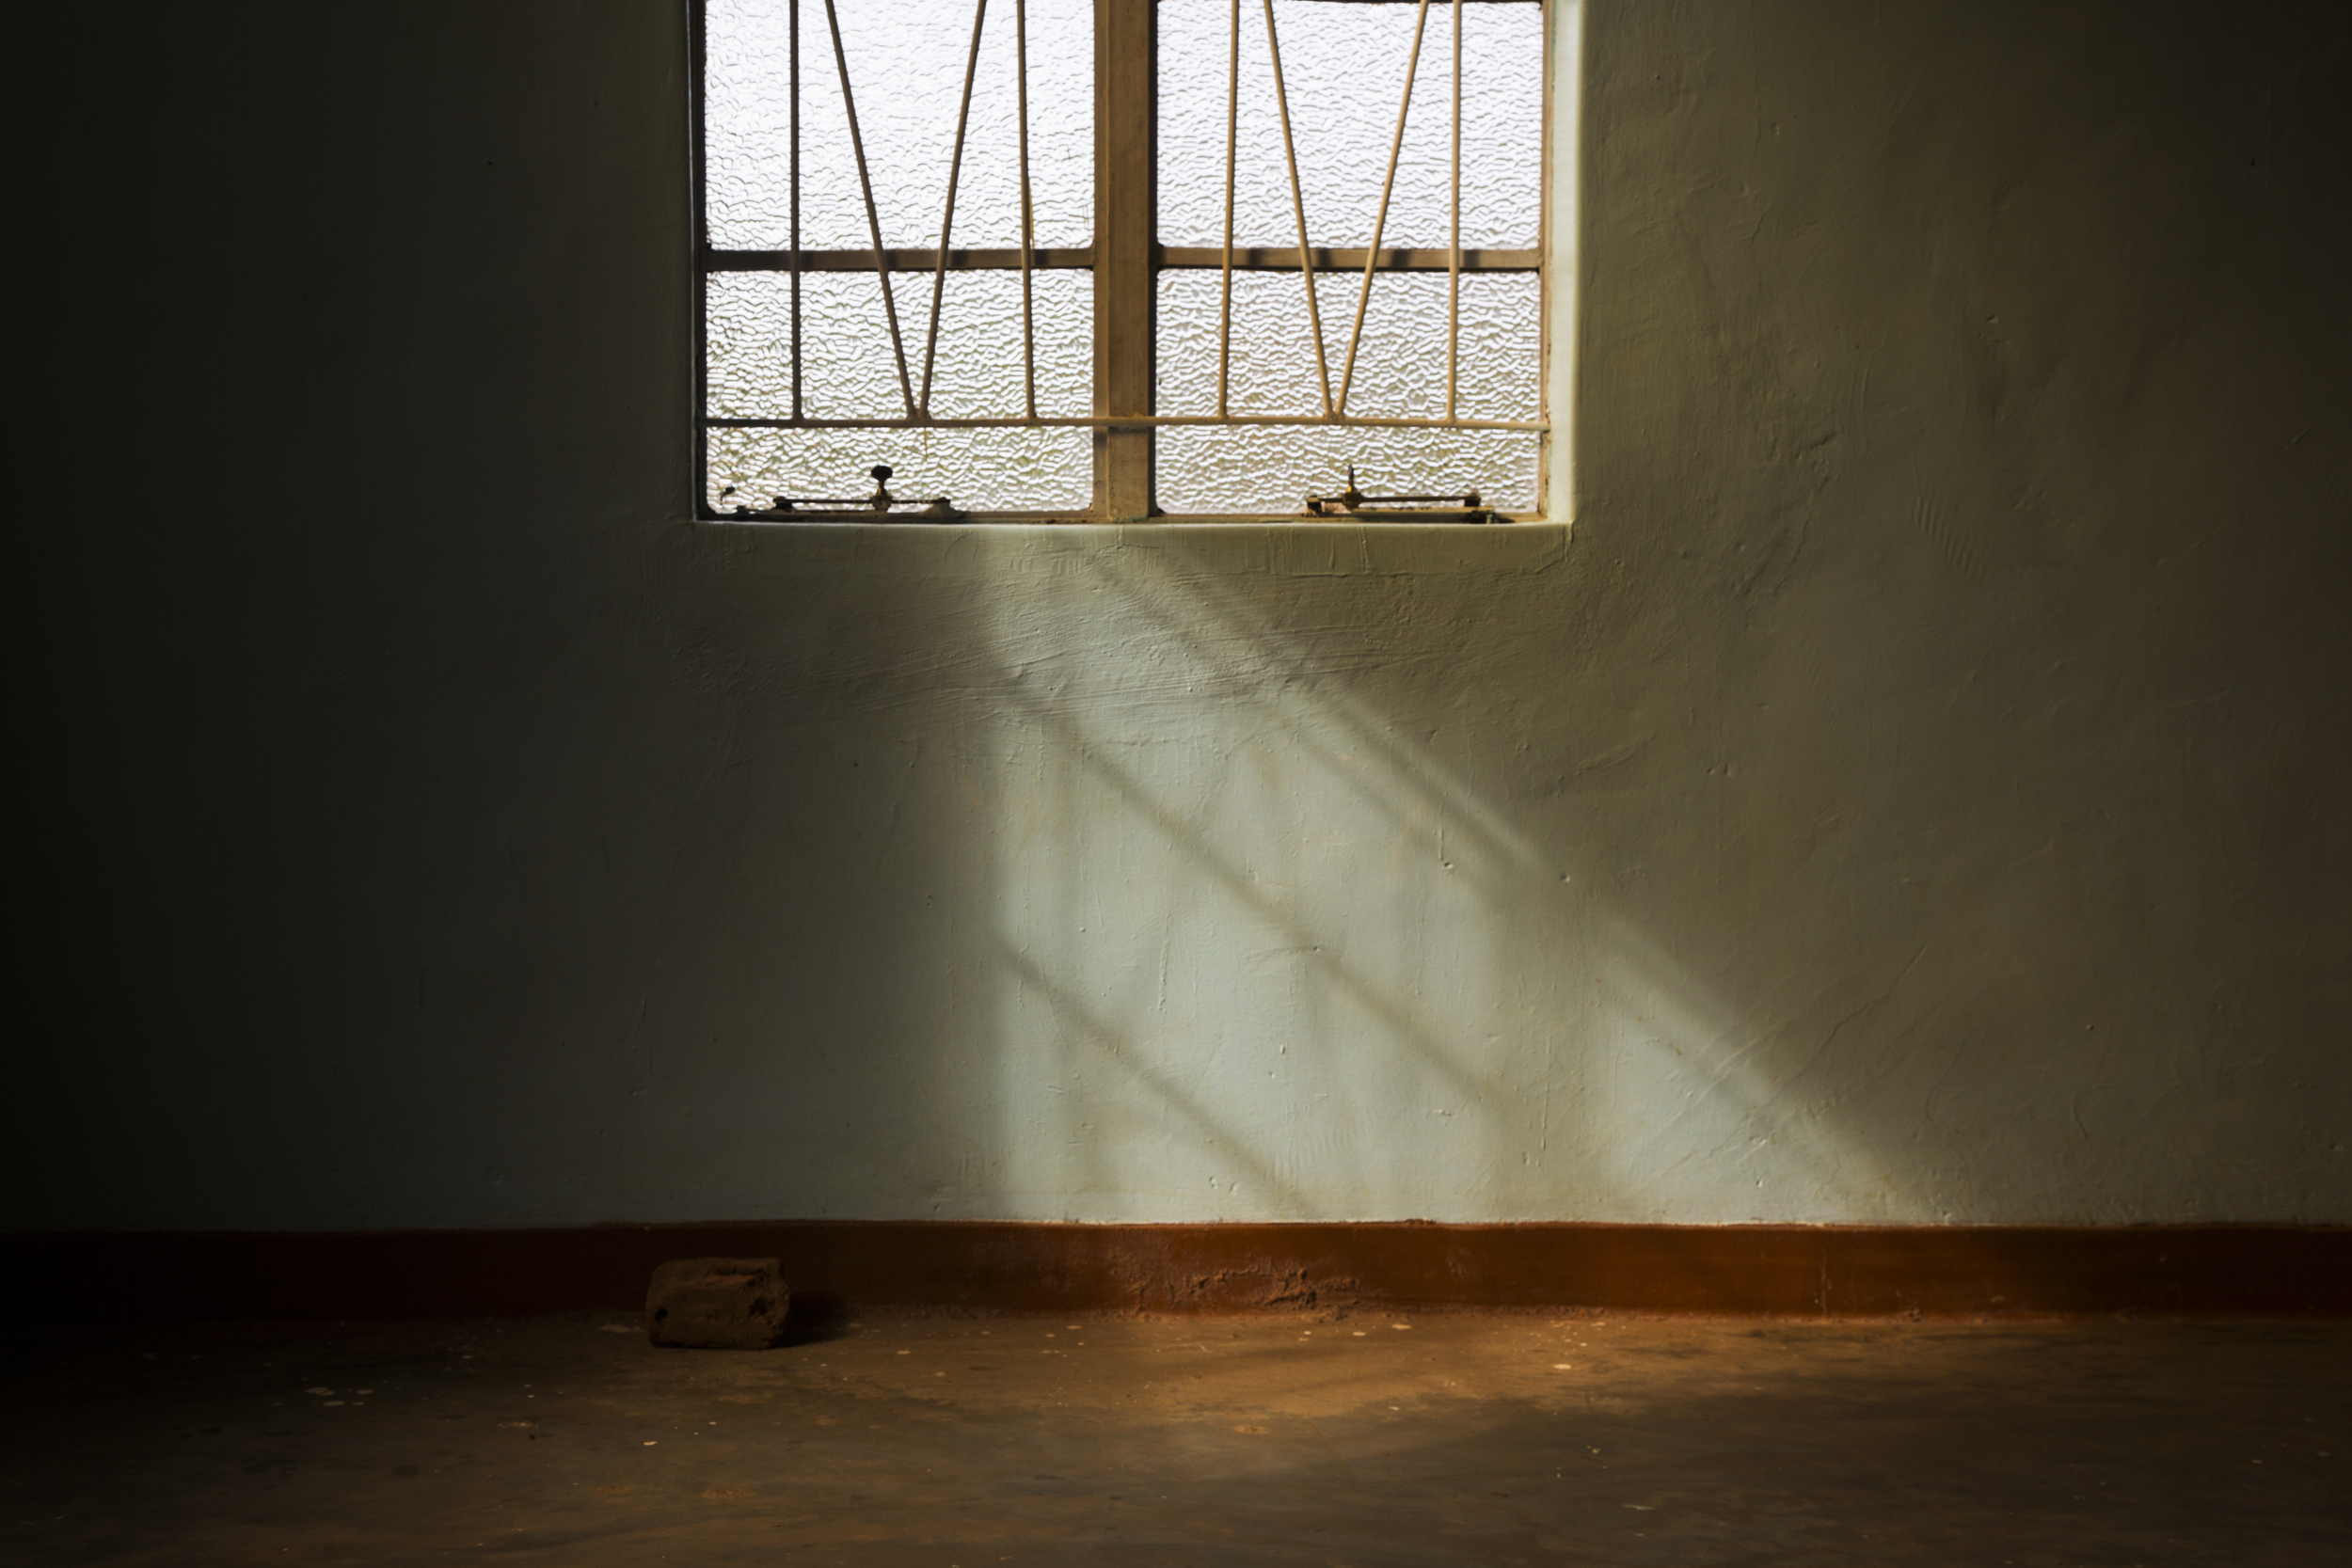 Morning light shines in through the window as members arrive at a Pentecostal church in Ntcheu District of Malawi, Africa on March 8, 2015.